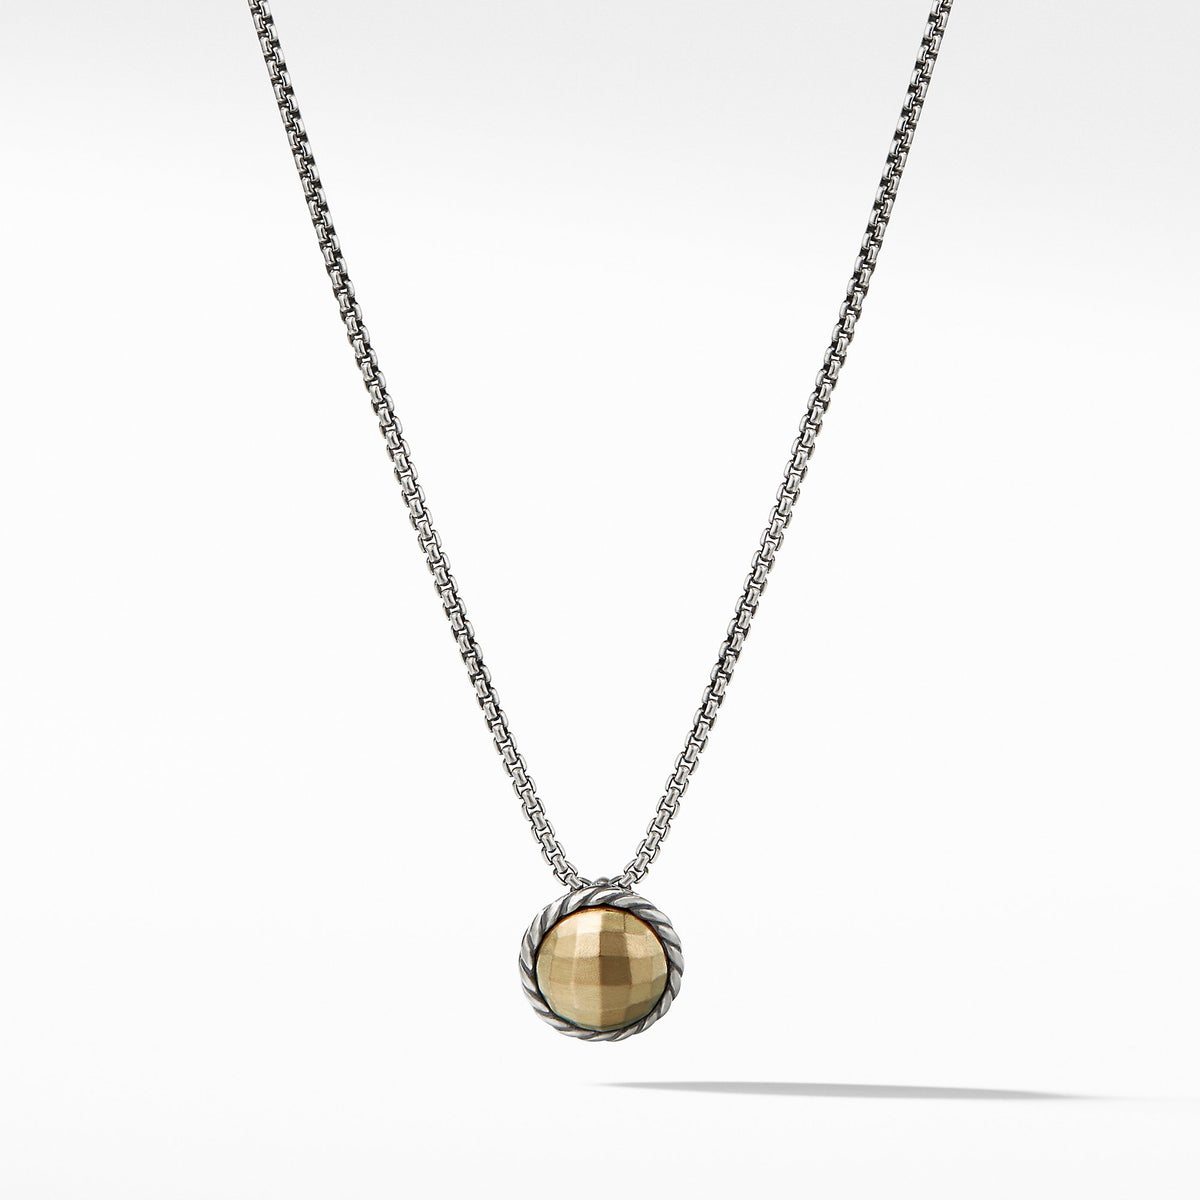 Chatelaine Necklace with 18K Gold